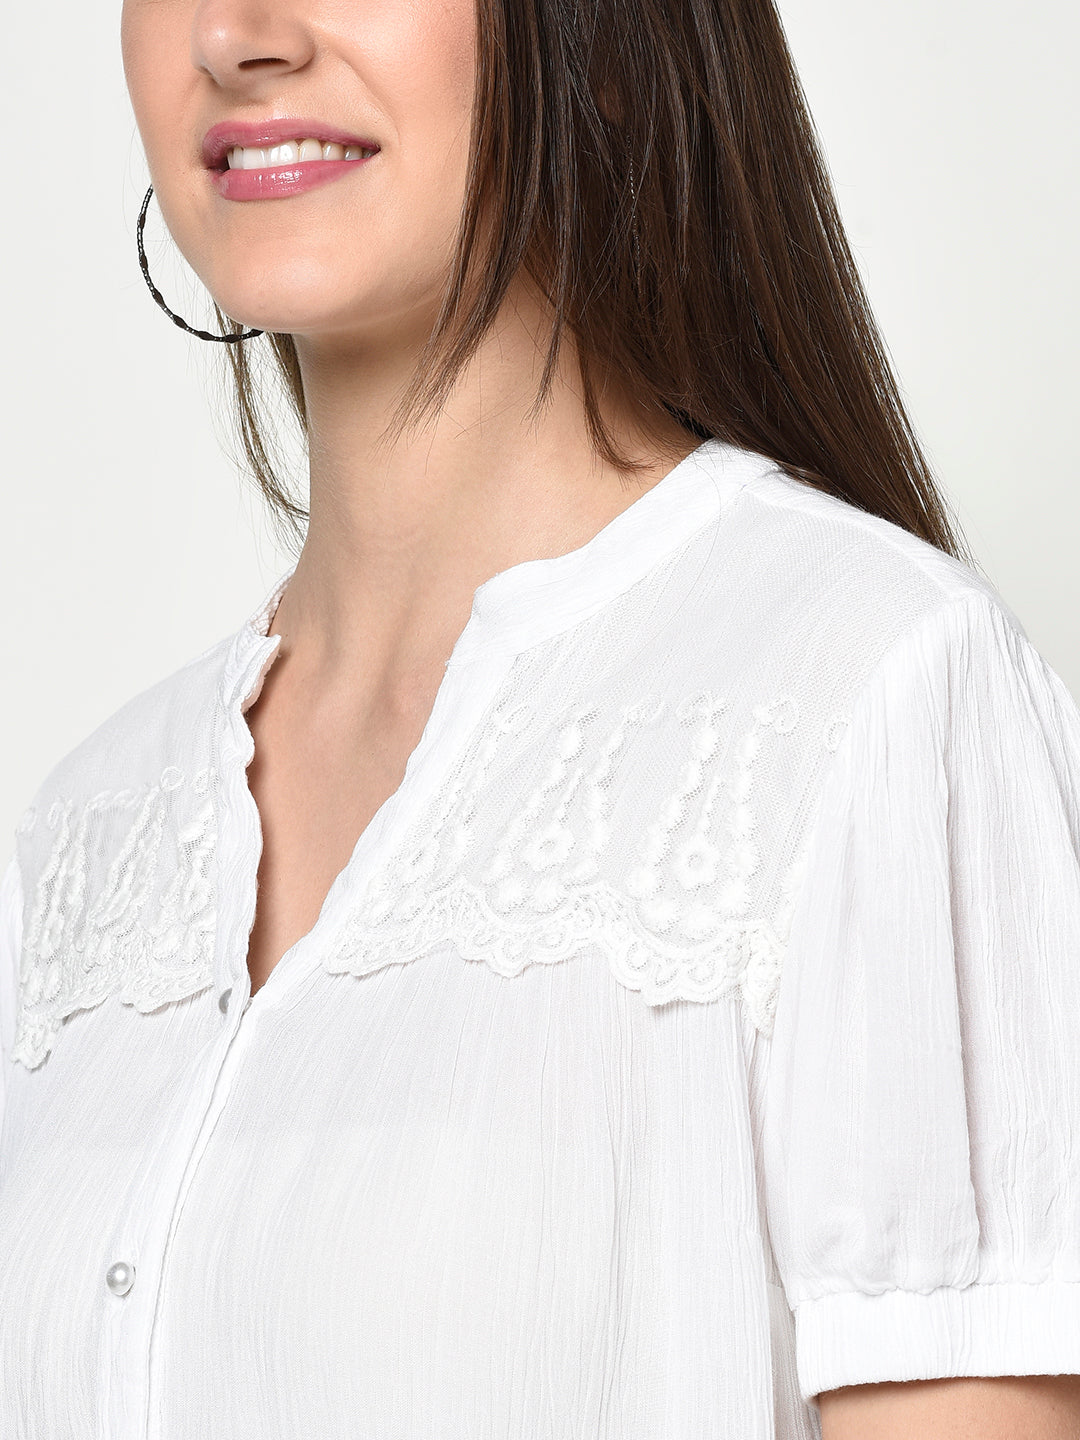 WHITE CRINKLE COTTON CREPE LACE SHIRT TOP - Avsoy